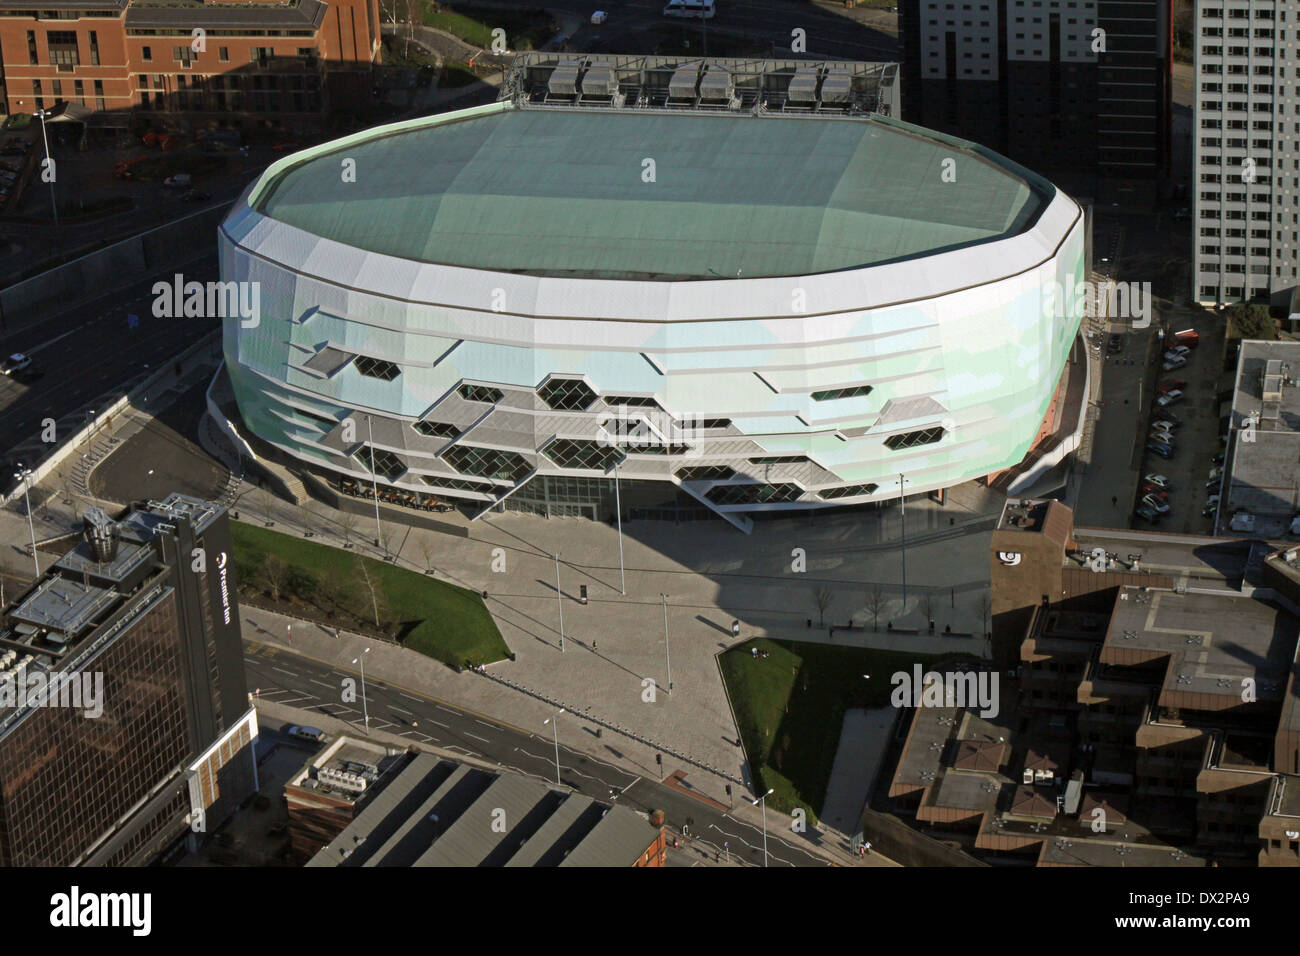 aerial view of the new auditorium Leeds Arena, or First Direct Arena, UK - Stock Image